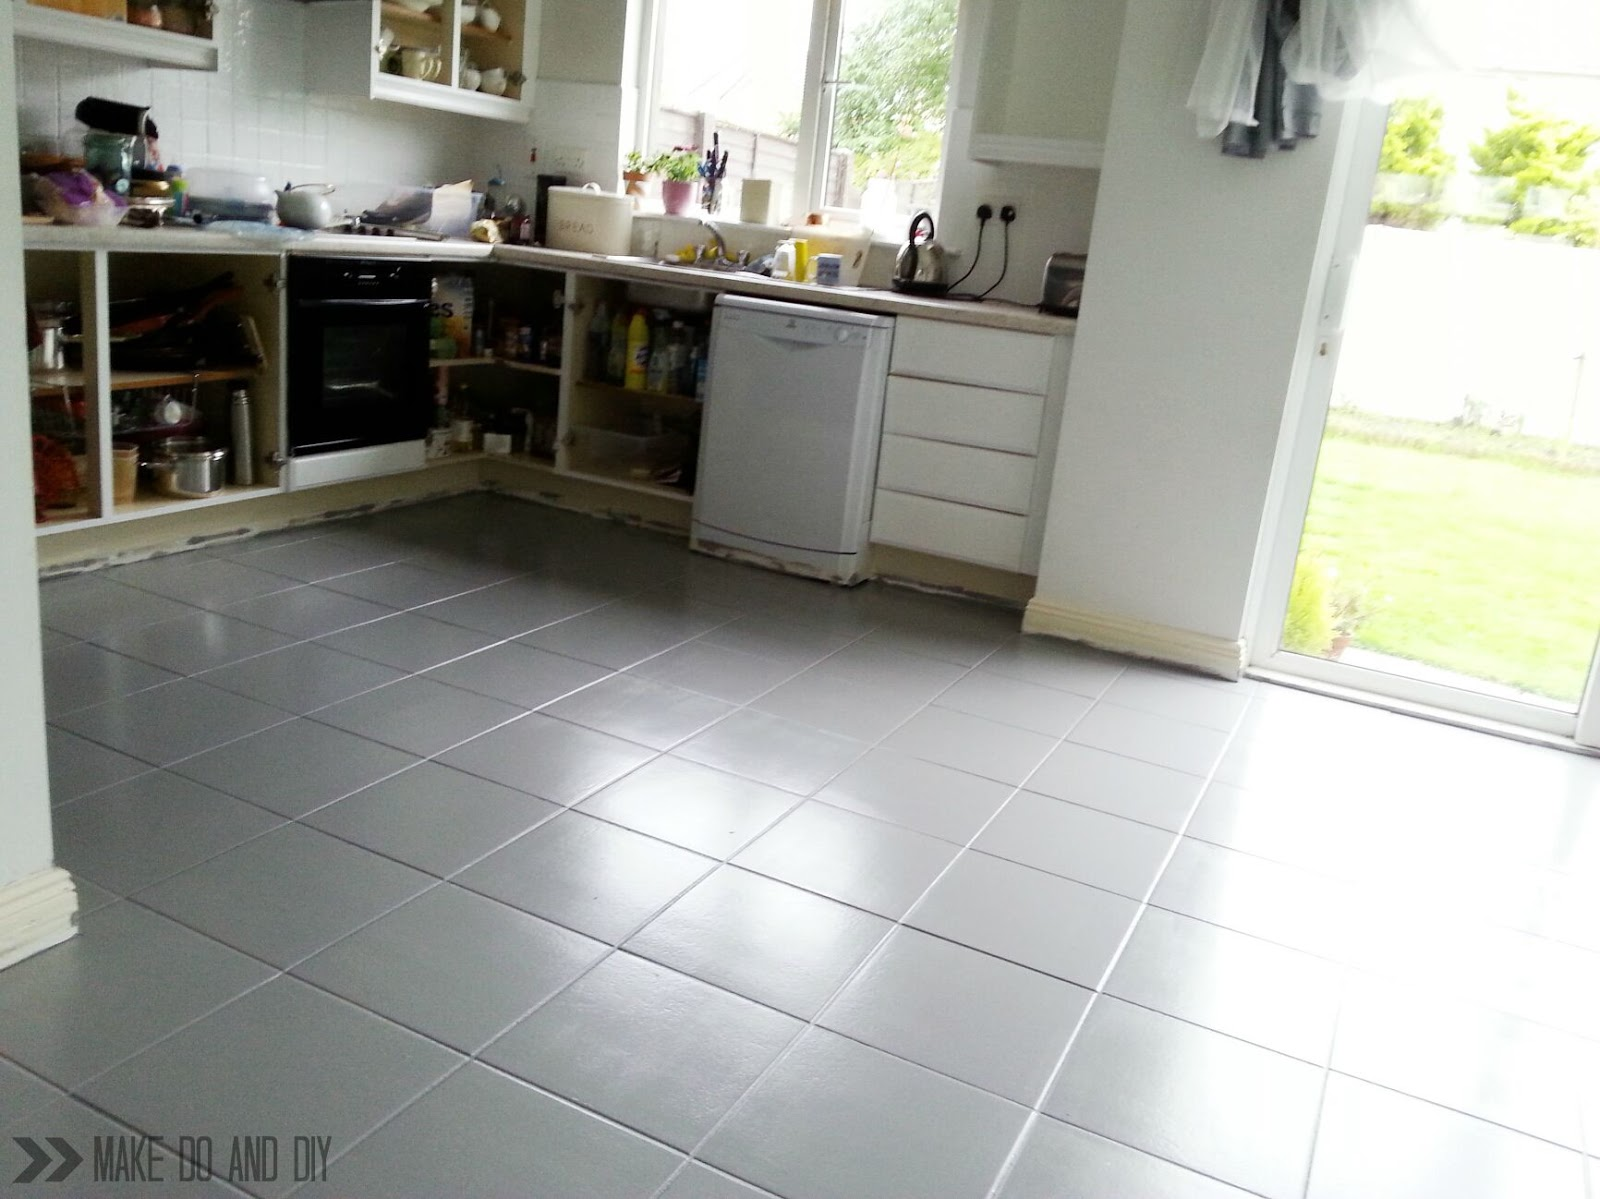 Kitchen Floor Tile Paint Painted Tile Floor No Really Make Do And Diy